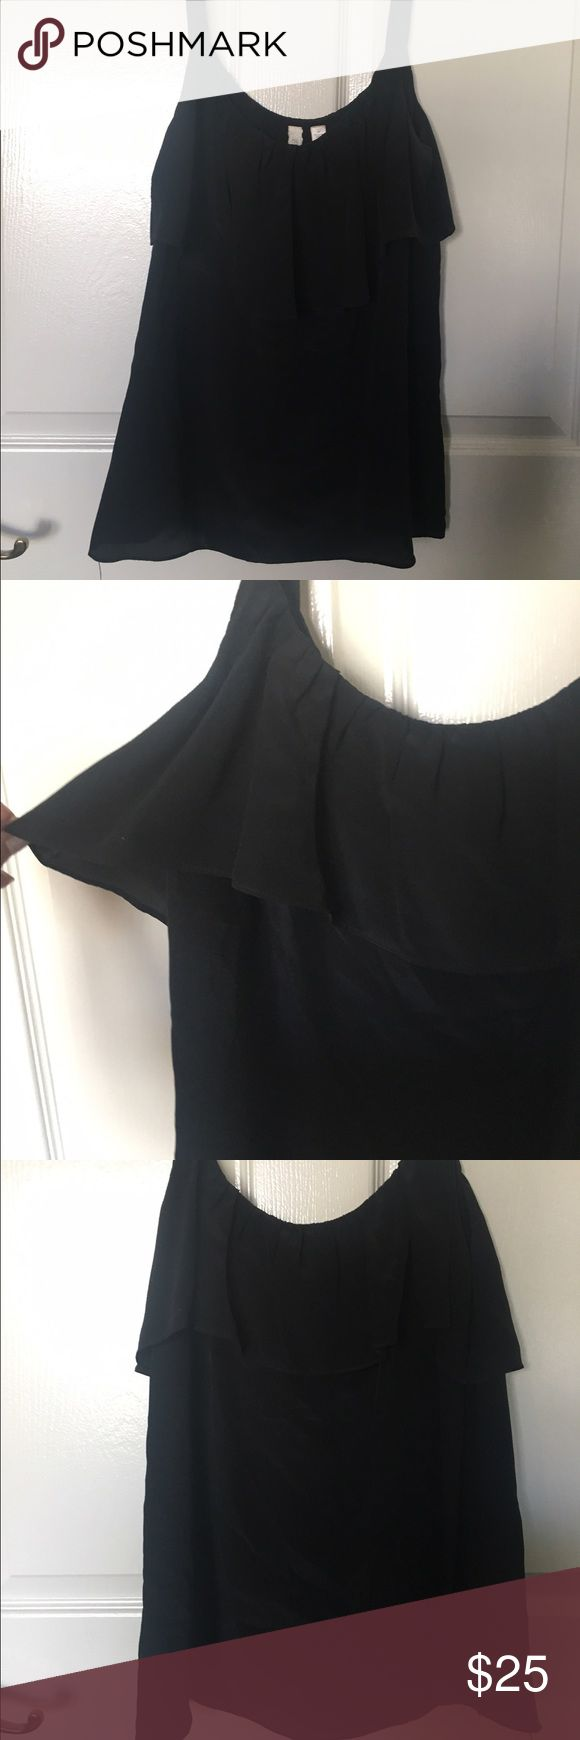 Anthropologie Eloise Black Silk Tank Top Excellent condition, wider straps, beautiful ruffle detail Anthropologie Tops Tank Tops